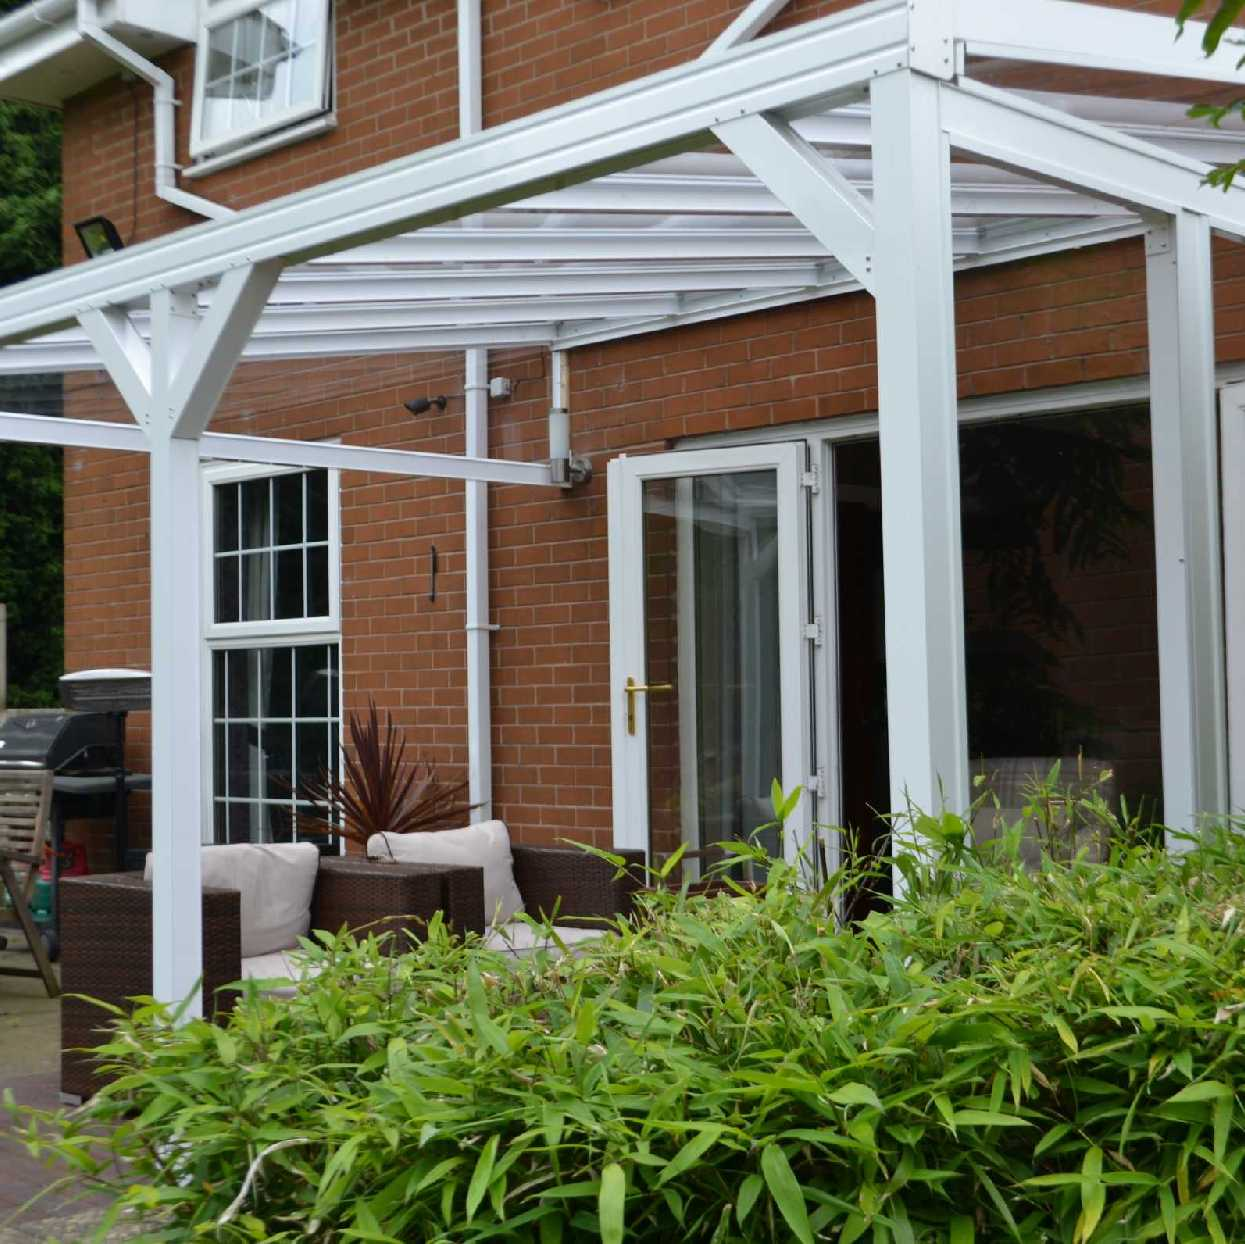 Omega Smart White Lean-To Canopy with 6mm Glass Clear Plate Polycarbonate Glazing - 3.5m (W) x 2.5m (P), (3) Supporting Posts from Omega Build